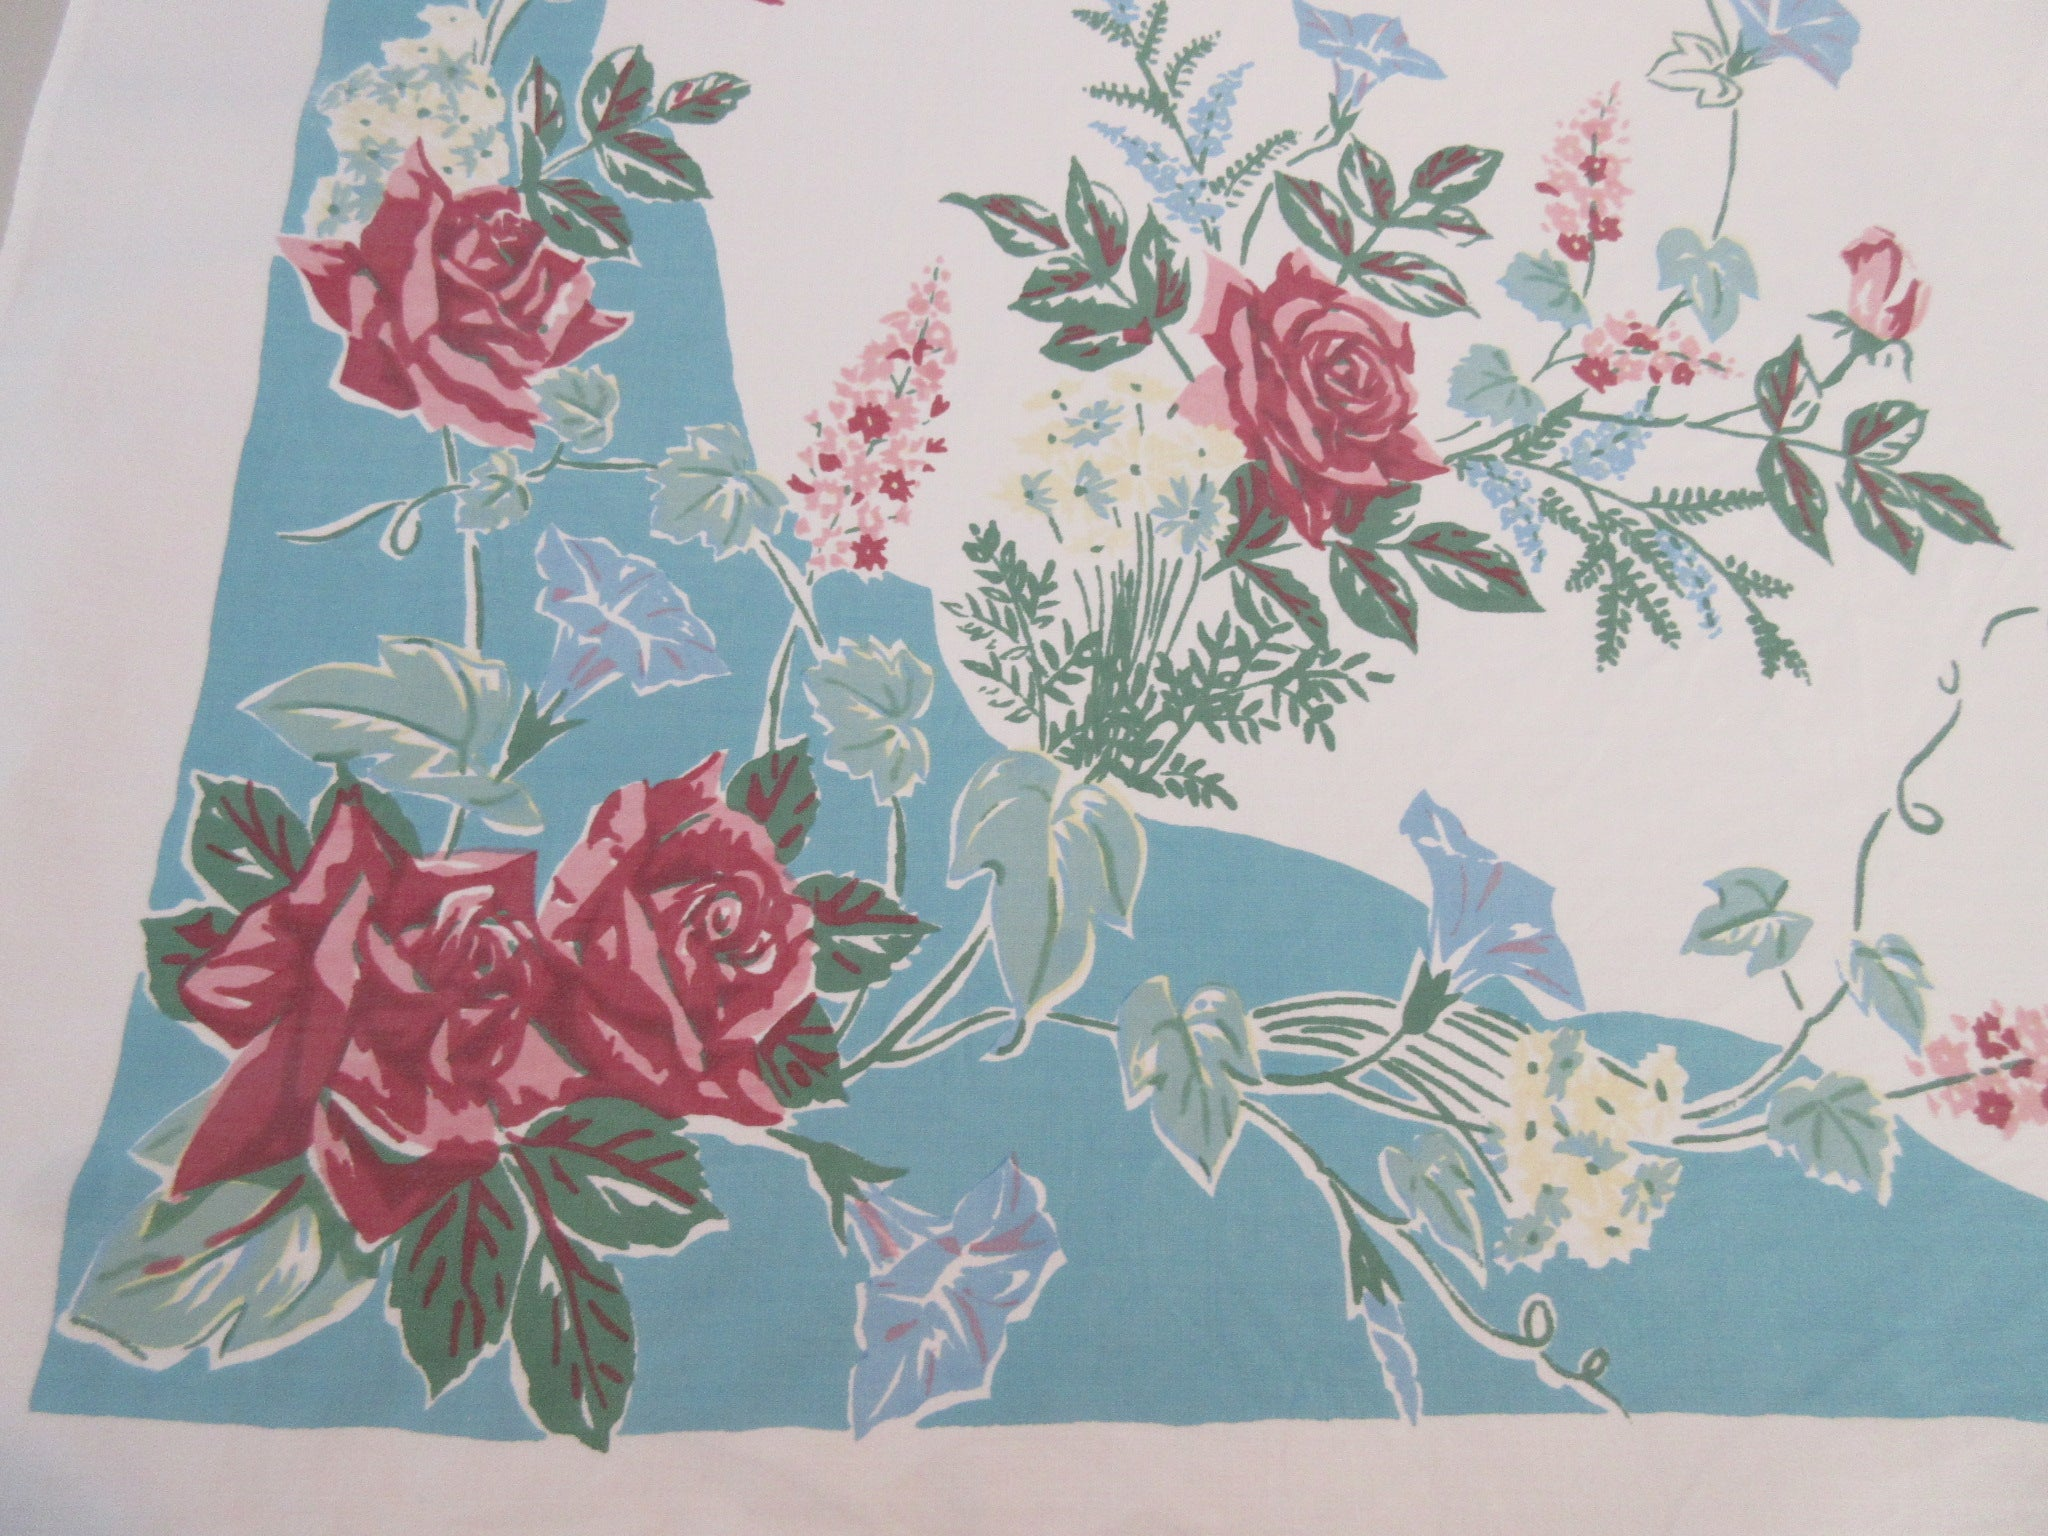 Larger Roses on Teal Colorway! Floral Vintage Printed Tablecloth (62 X 51)